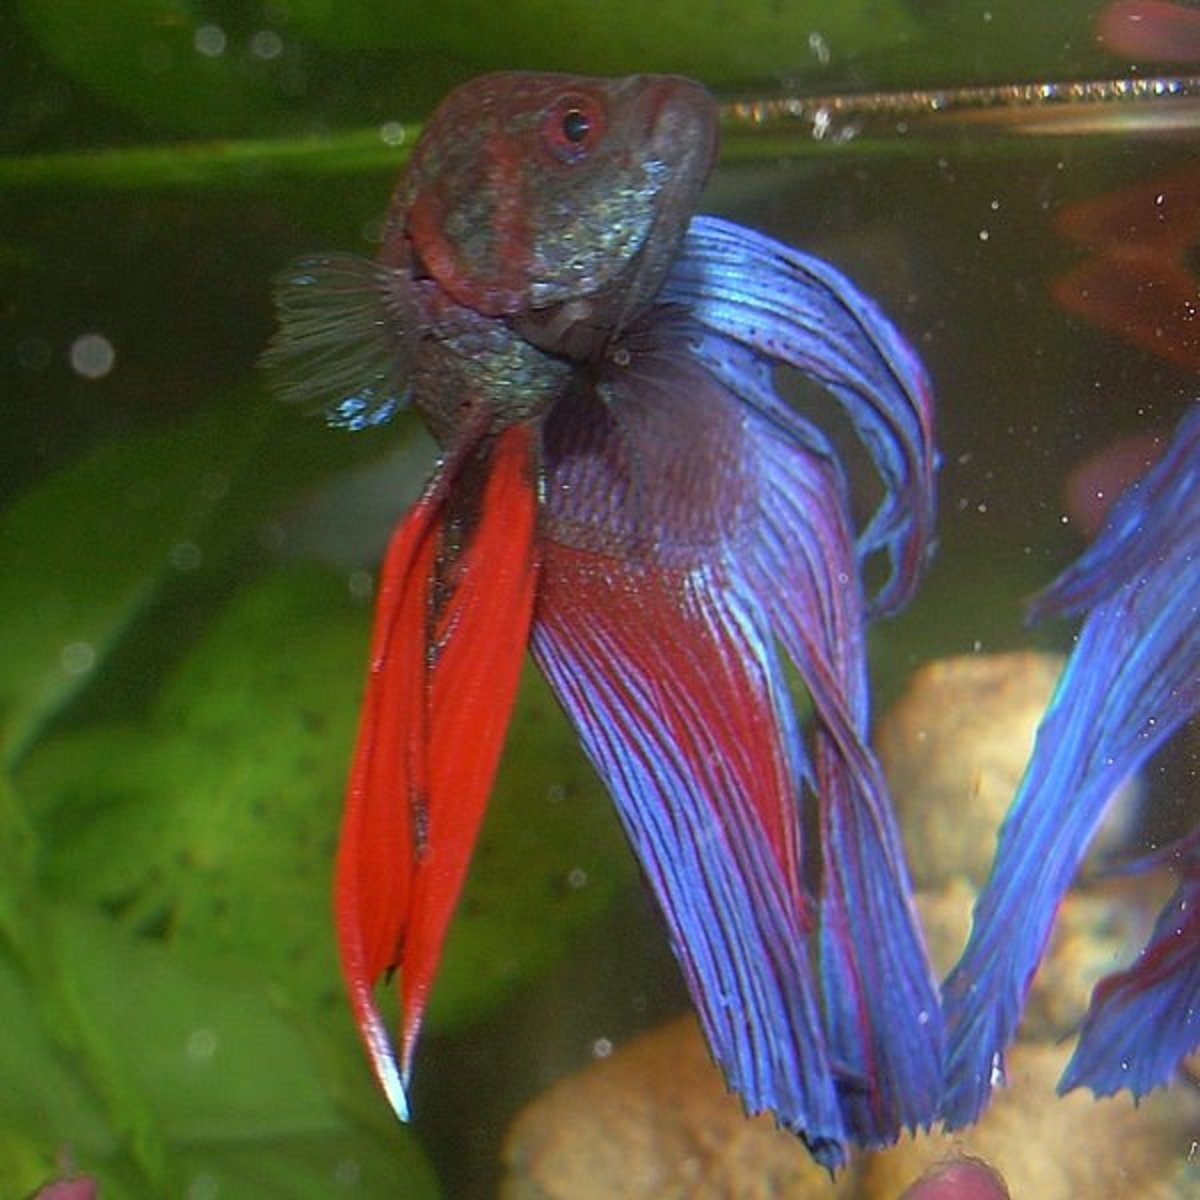 Does your Betta require a heater and filter in his tank?